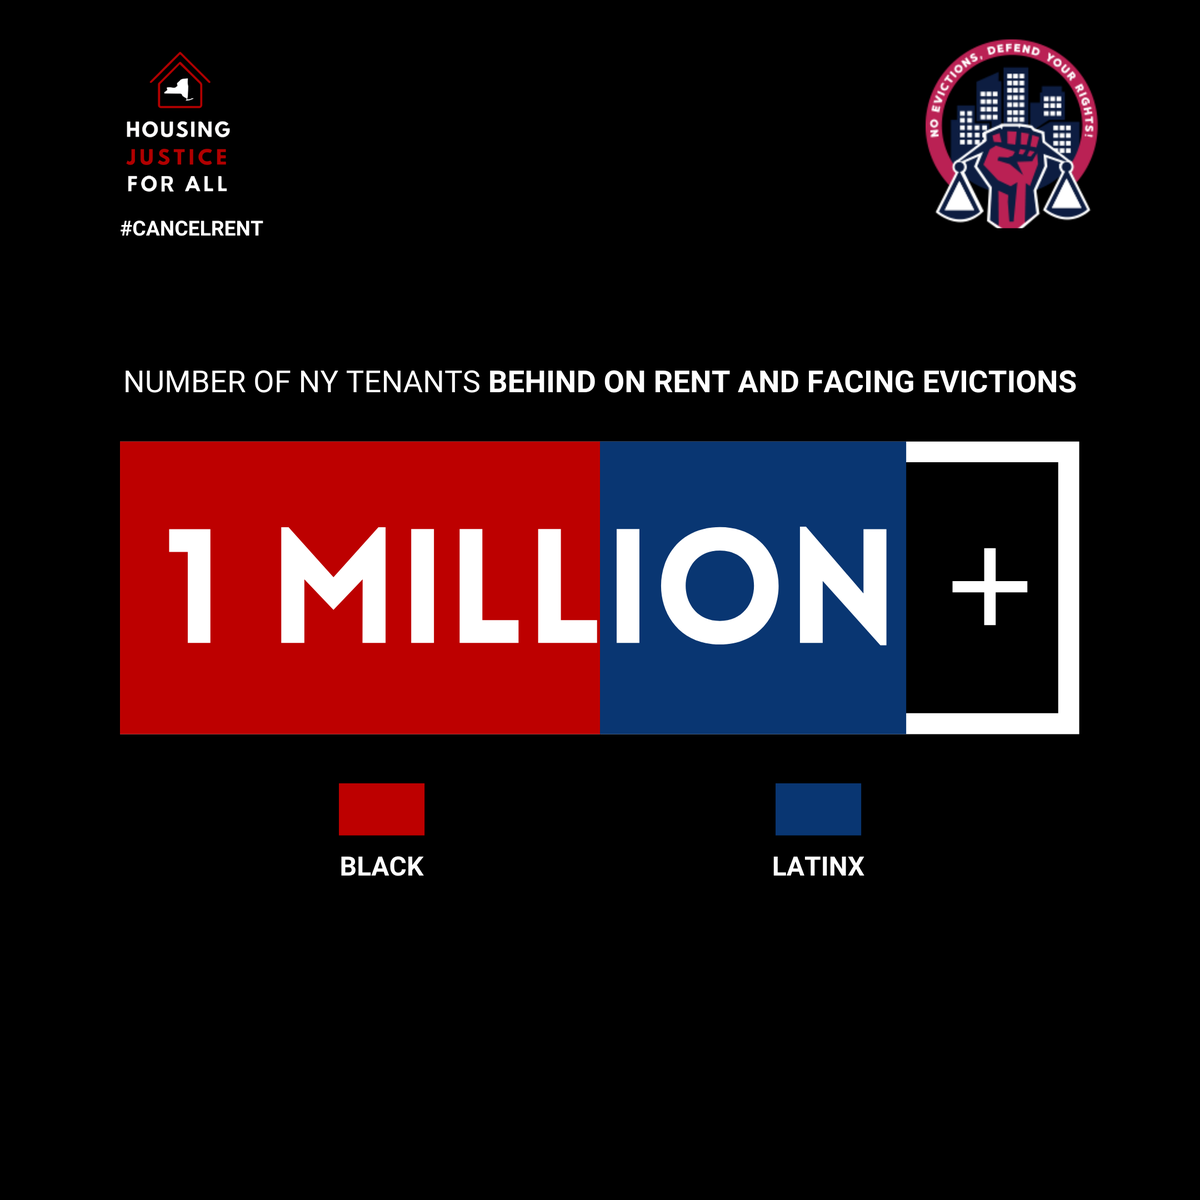 Half a million Black and 300K Latinx tenants are behind on rent & at risk of eviction. These numbers are only going up. Housing Justice = Racial Justice. Call your State reps to support @zellnor4ny @KarinesReyesNYC eviction moratorium today! #EvictionFreeNY #CancelRent